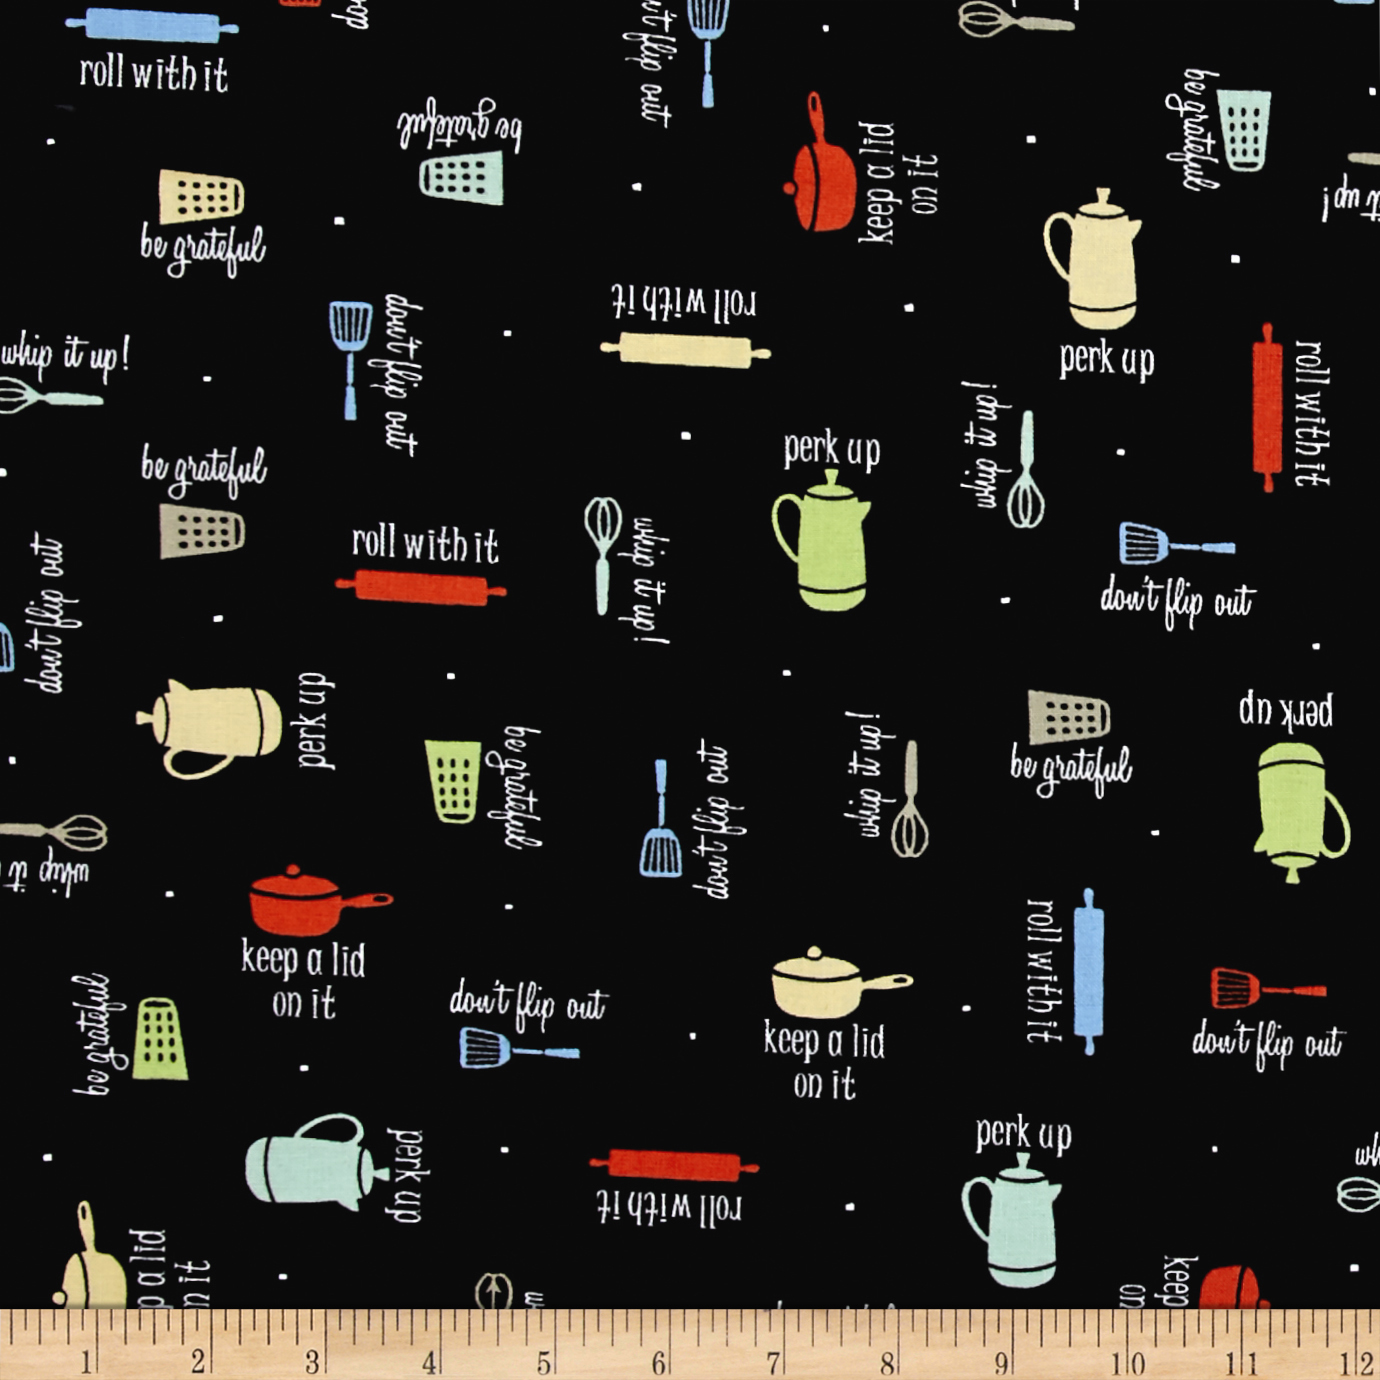 Whip It Up Kitchen Items & Phrases Black Fabric 0431833